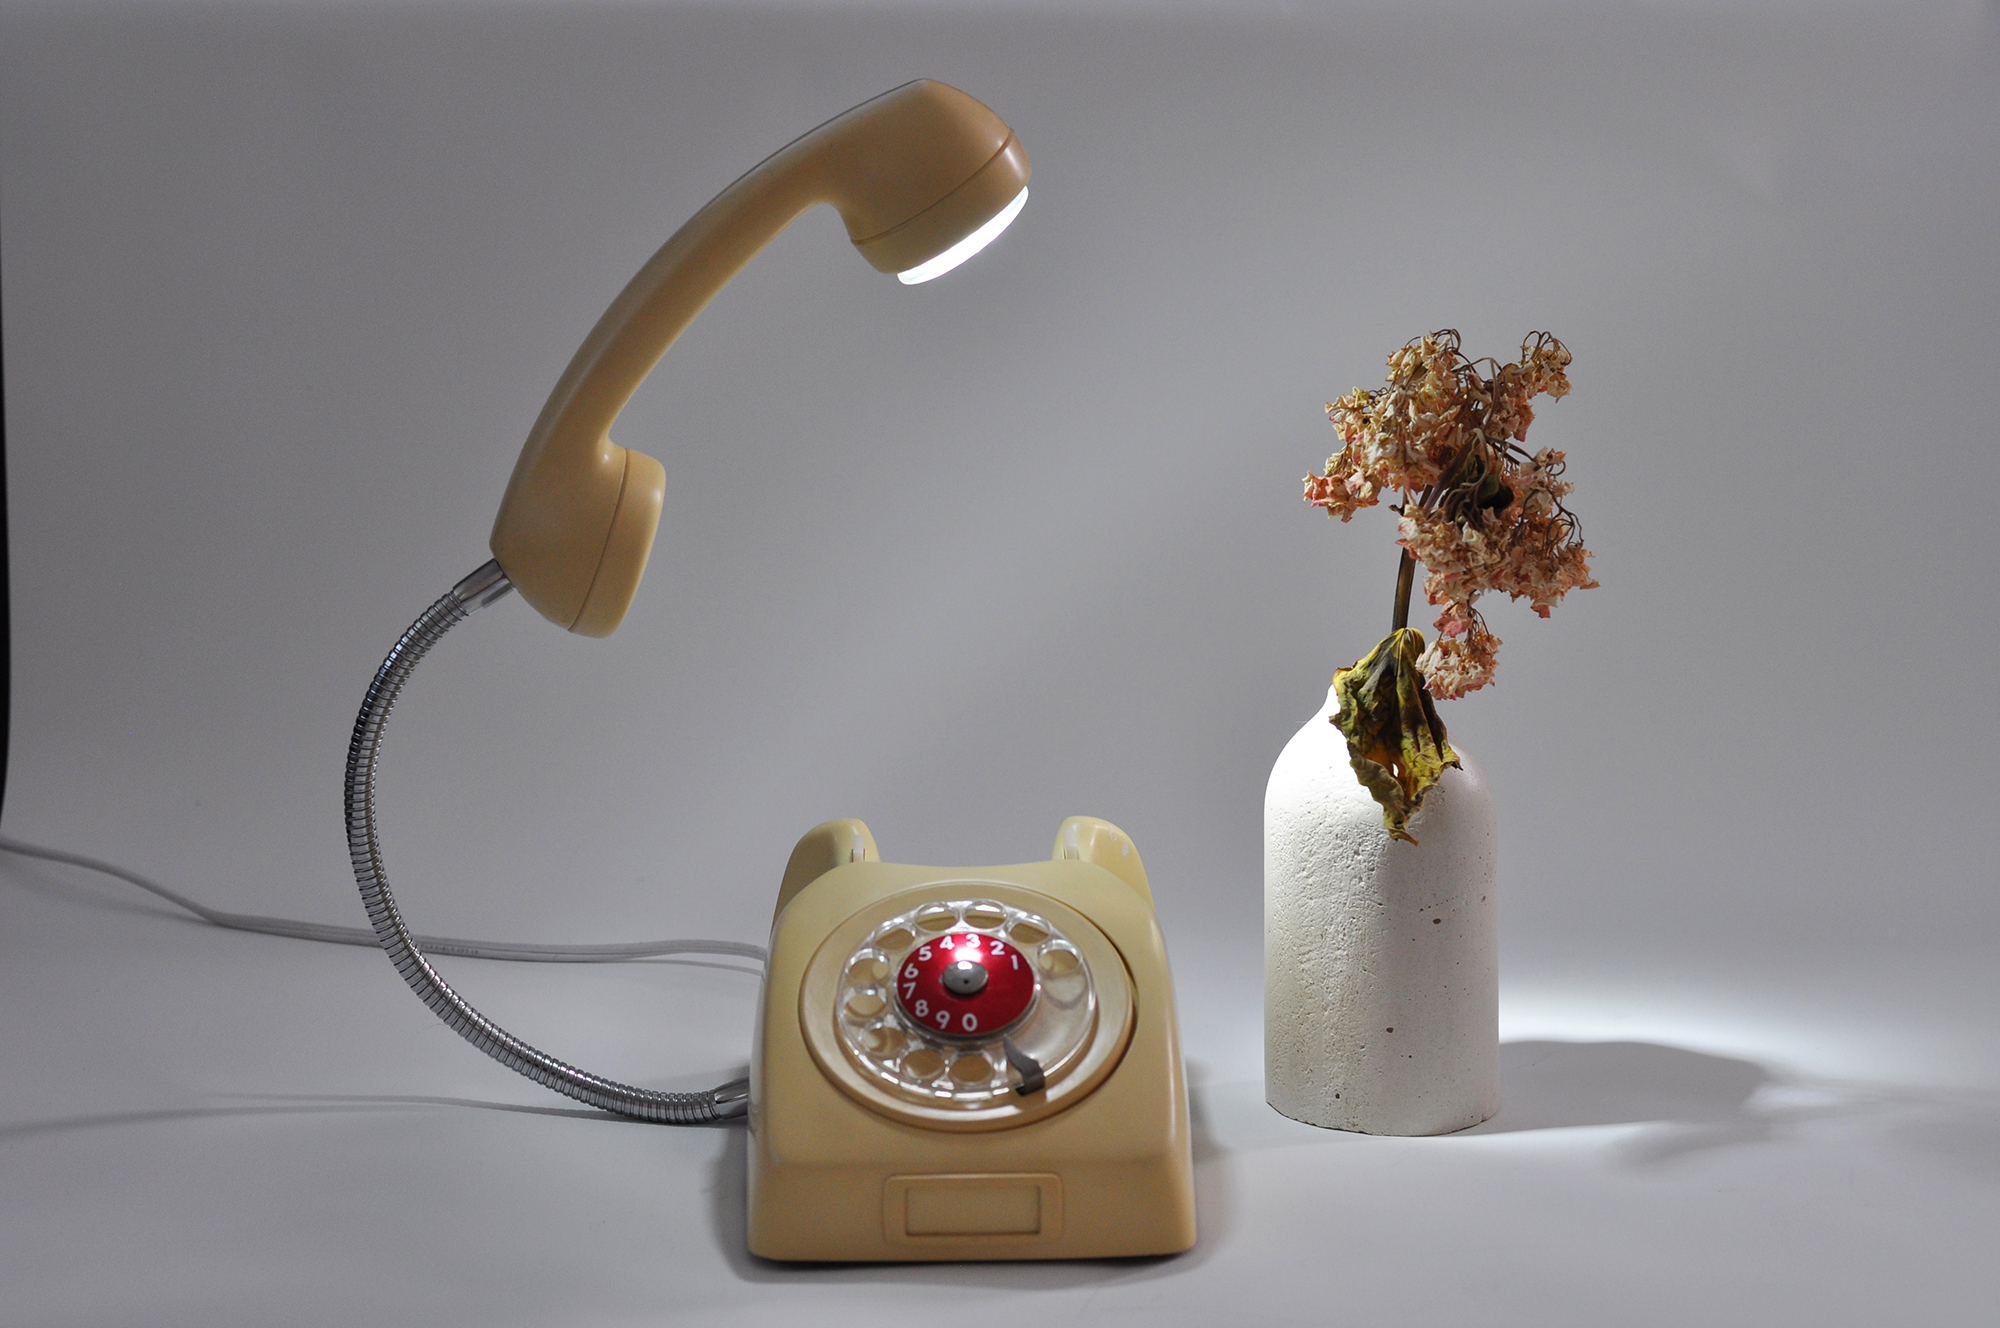 Vintage telephone lamp